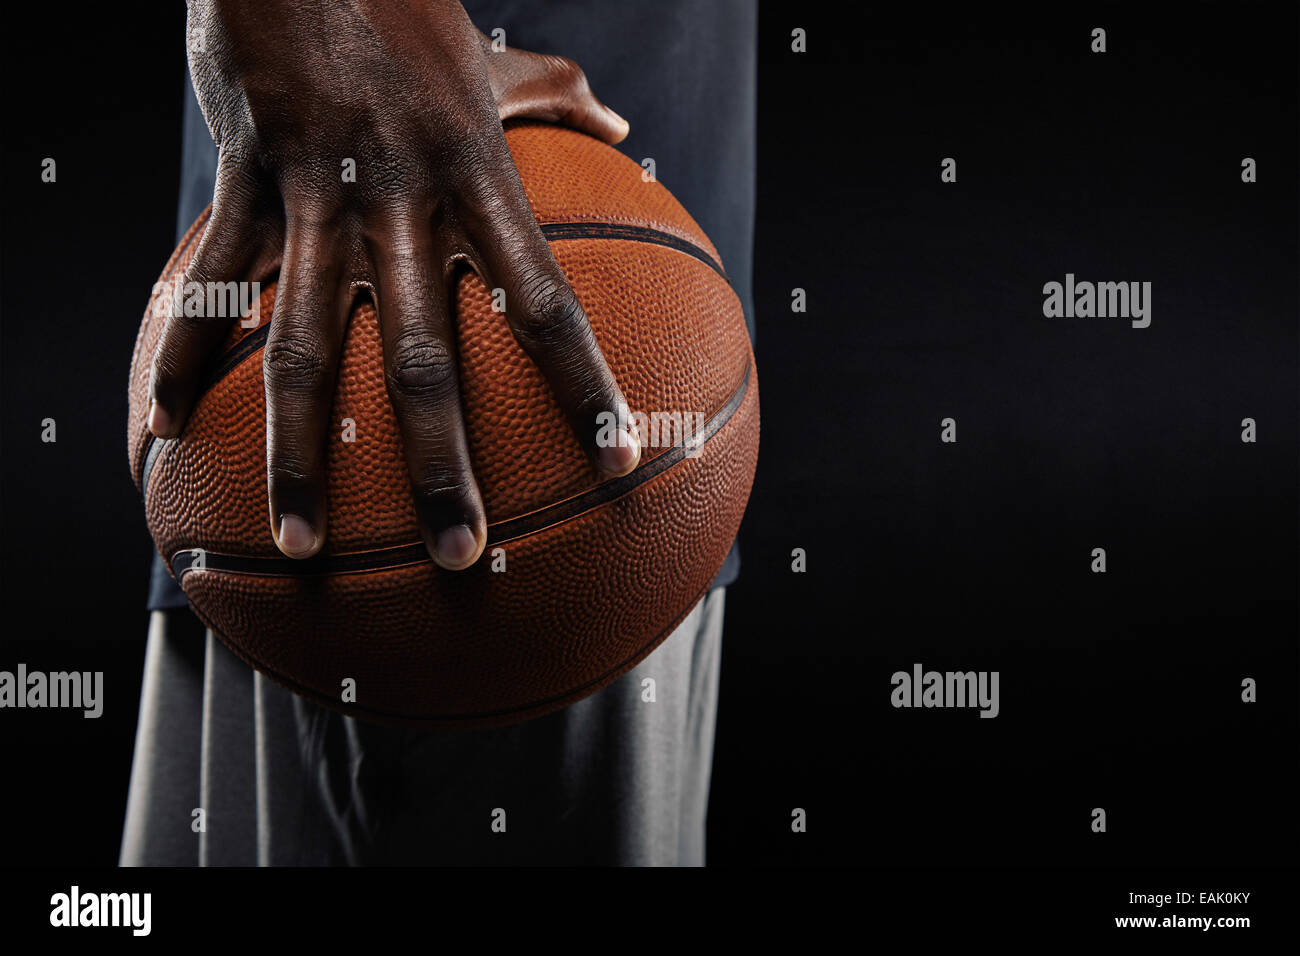 Close Up Of A Hand Of Basketball Player Holding A Ball